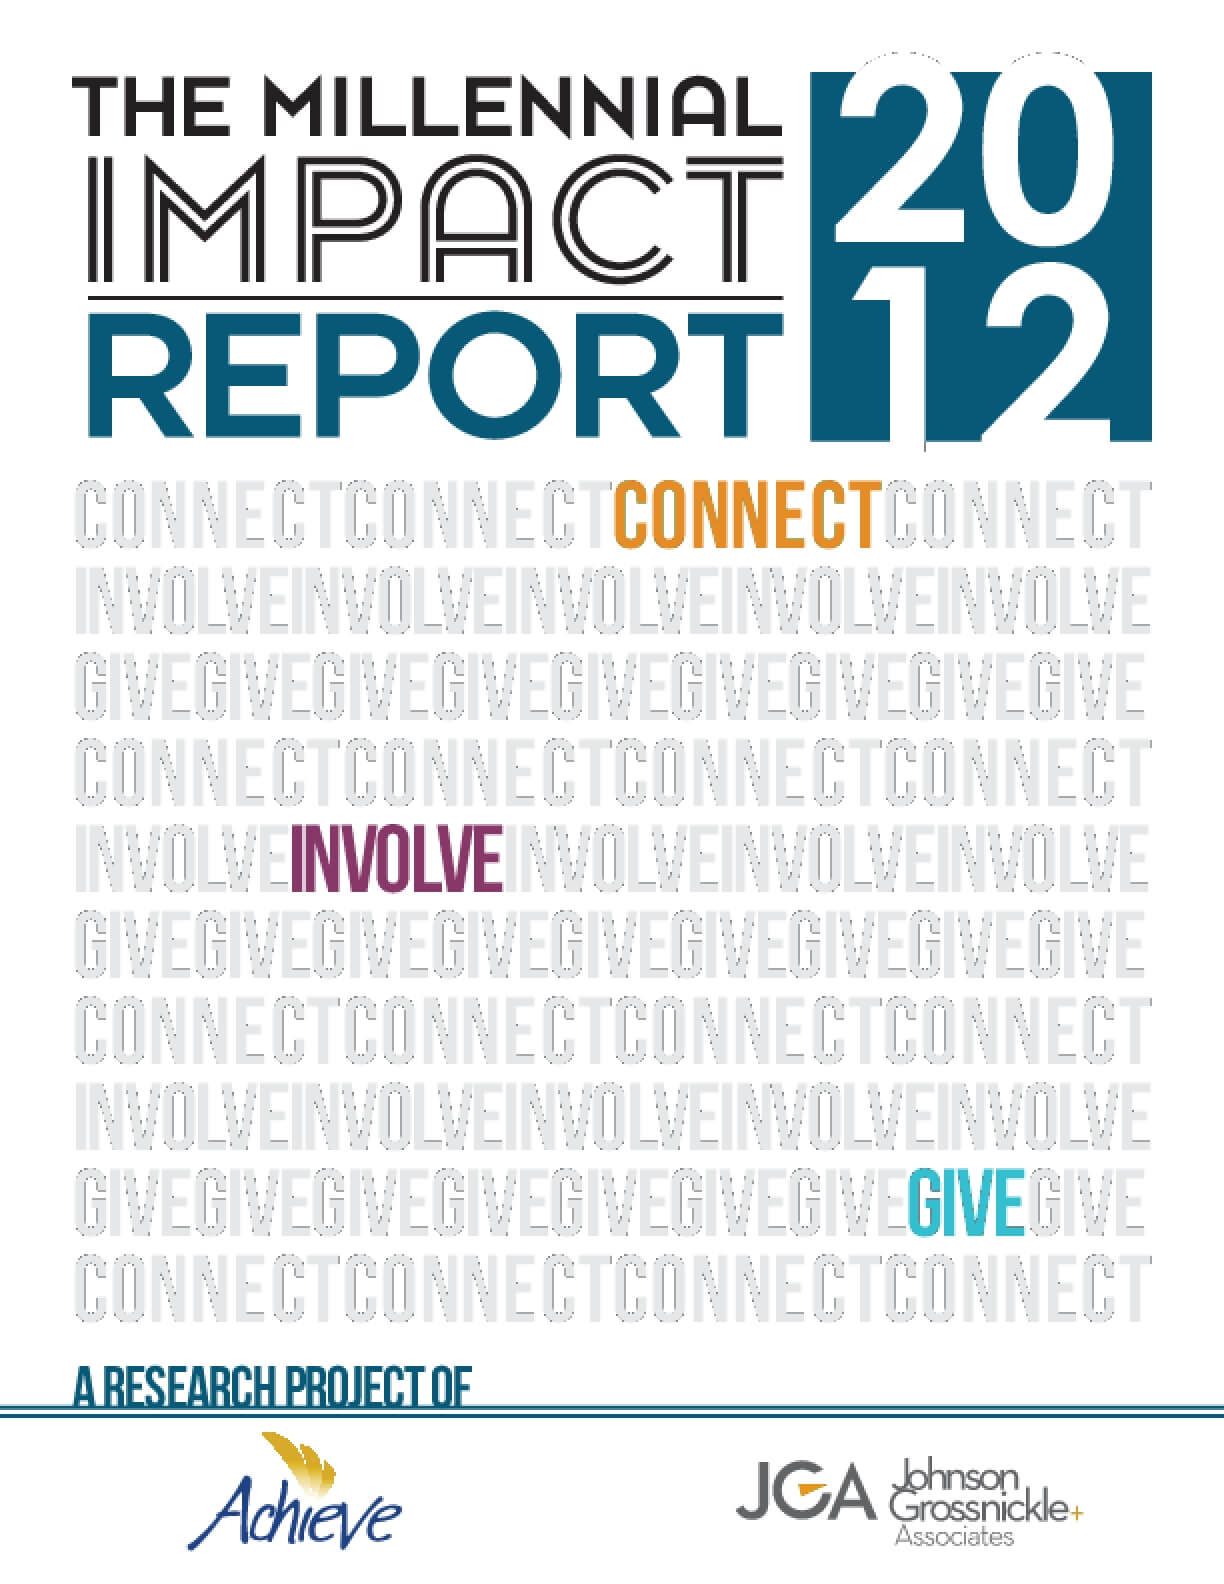 The Millennial Impact Report 2012